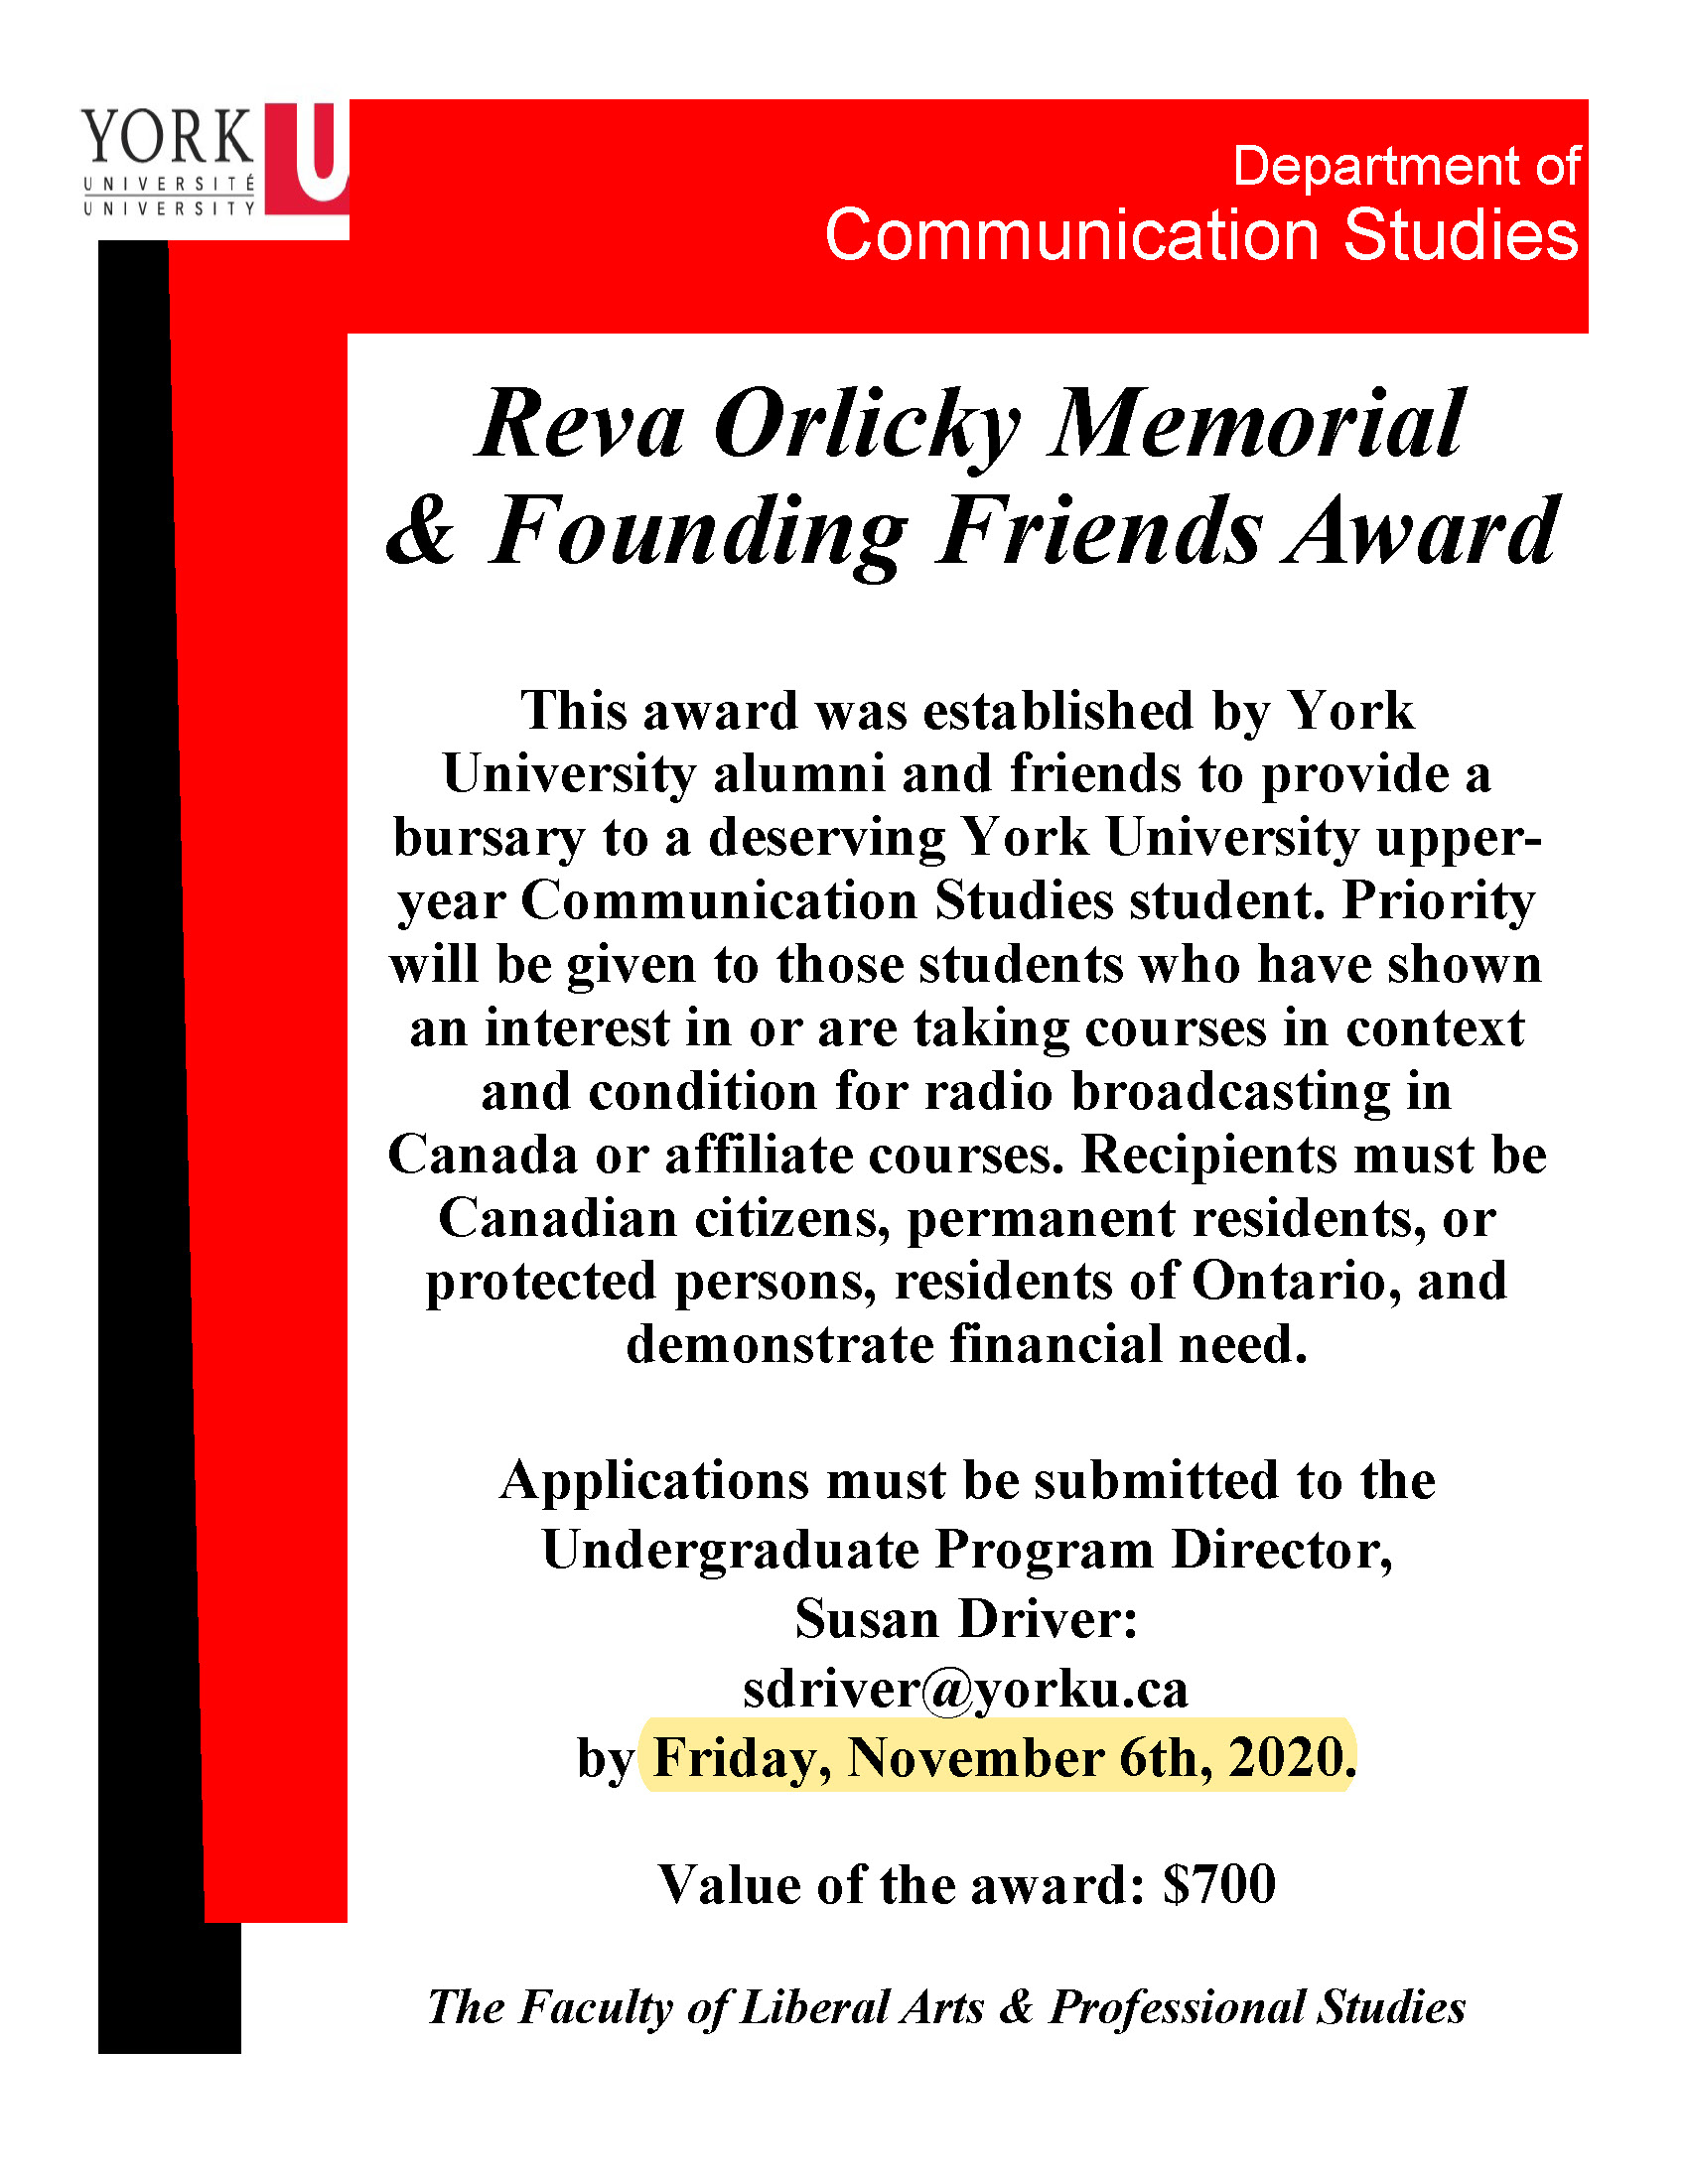 Reva Orlicky Memorial & Founding Friends Award